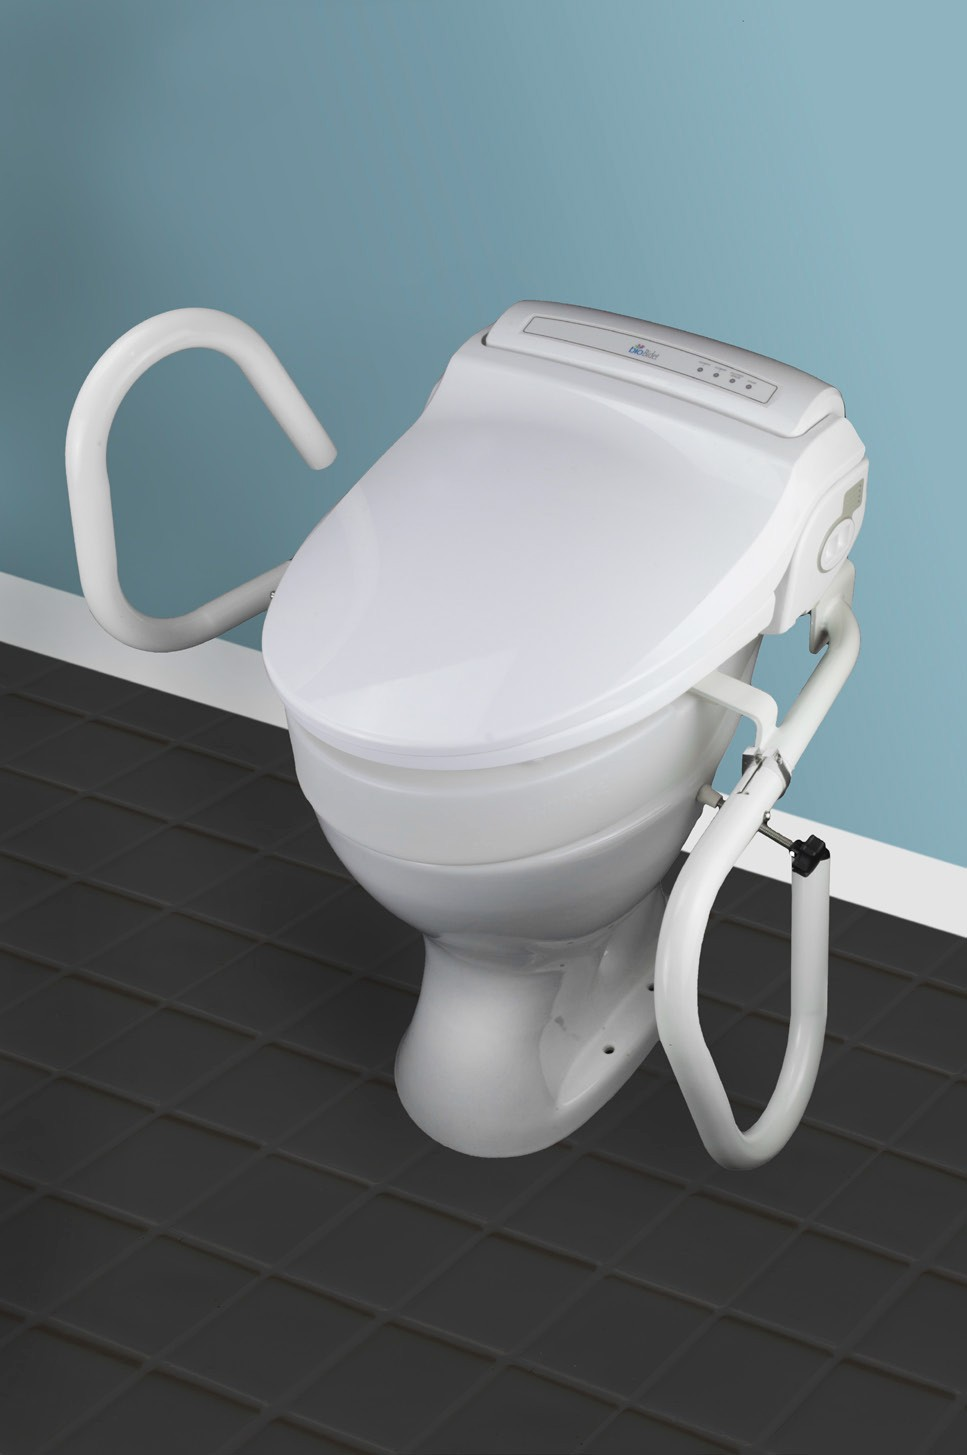 Bio Bidet 800 bidet toilet seat - for intimate hygiene ...